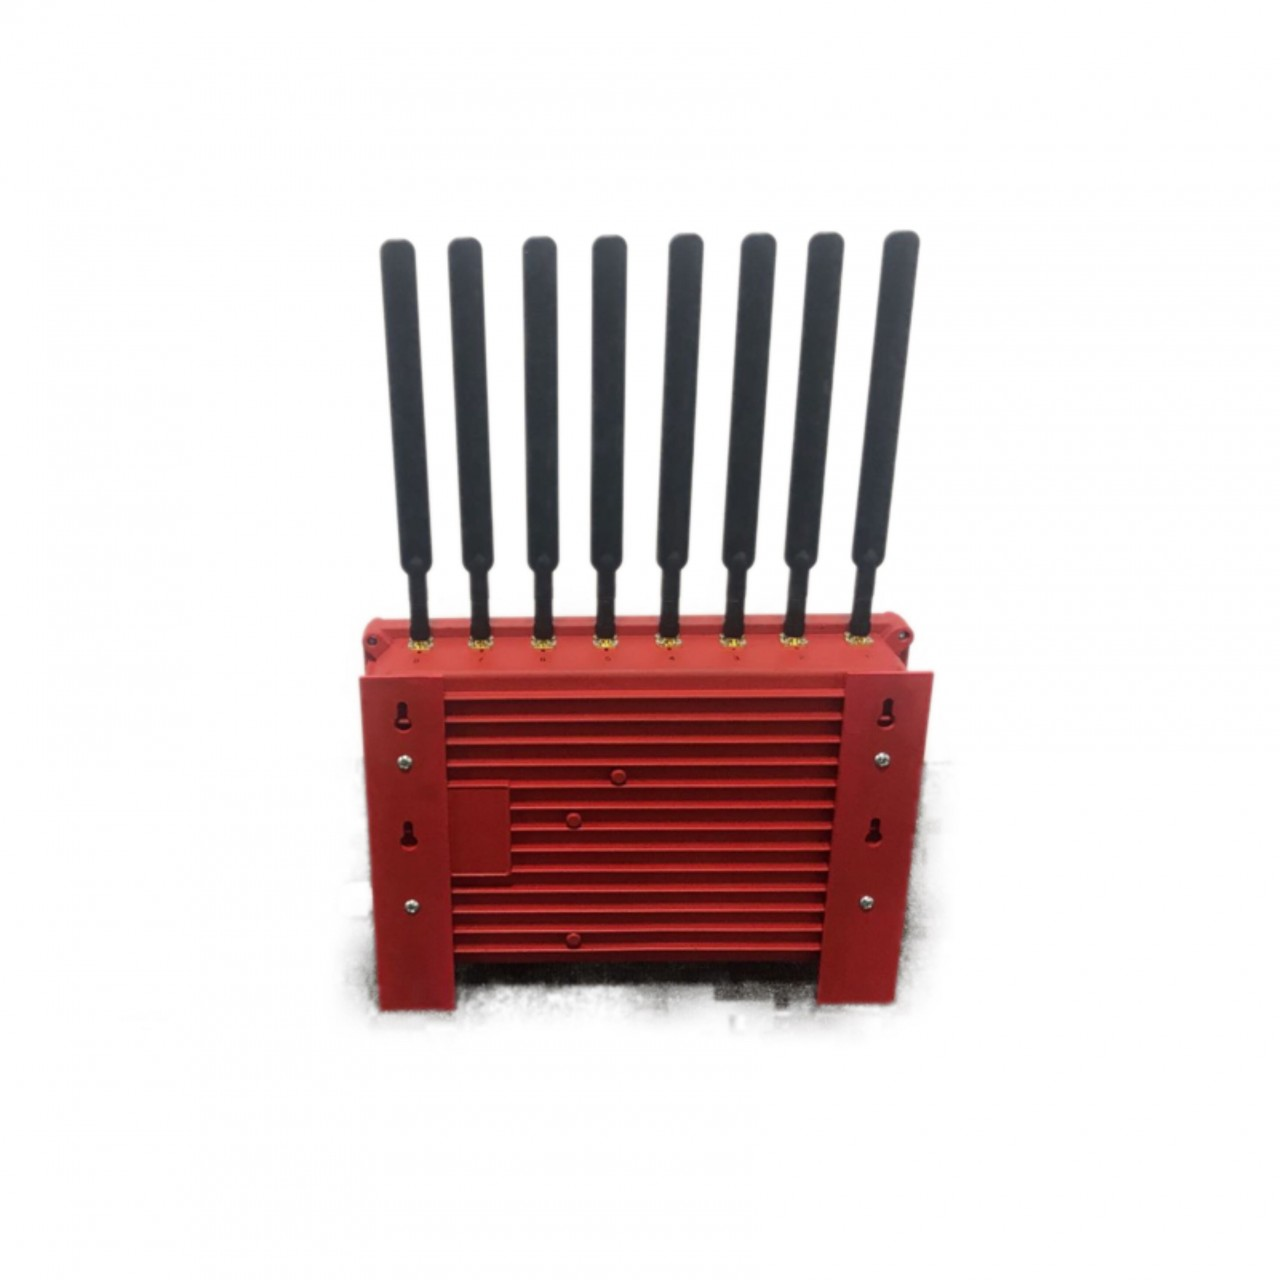 Explosion-proof Cell Phone Signal Jammer 2G/3G/4G + 2.4G WiFi Blocker